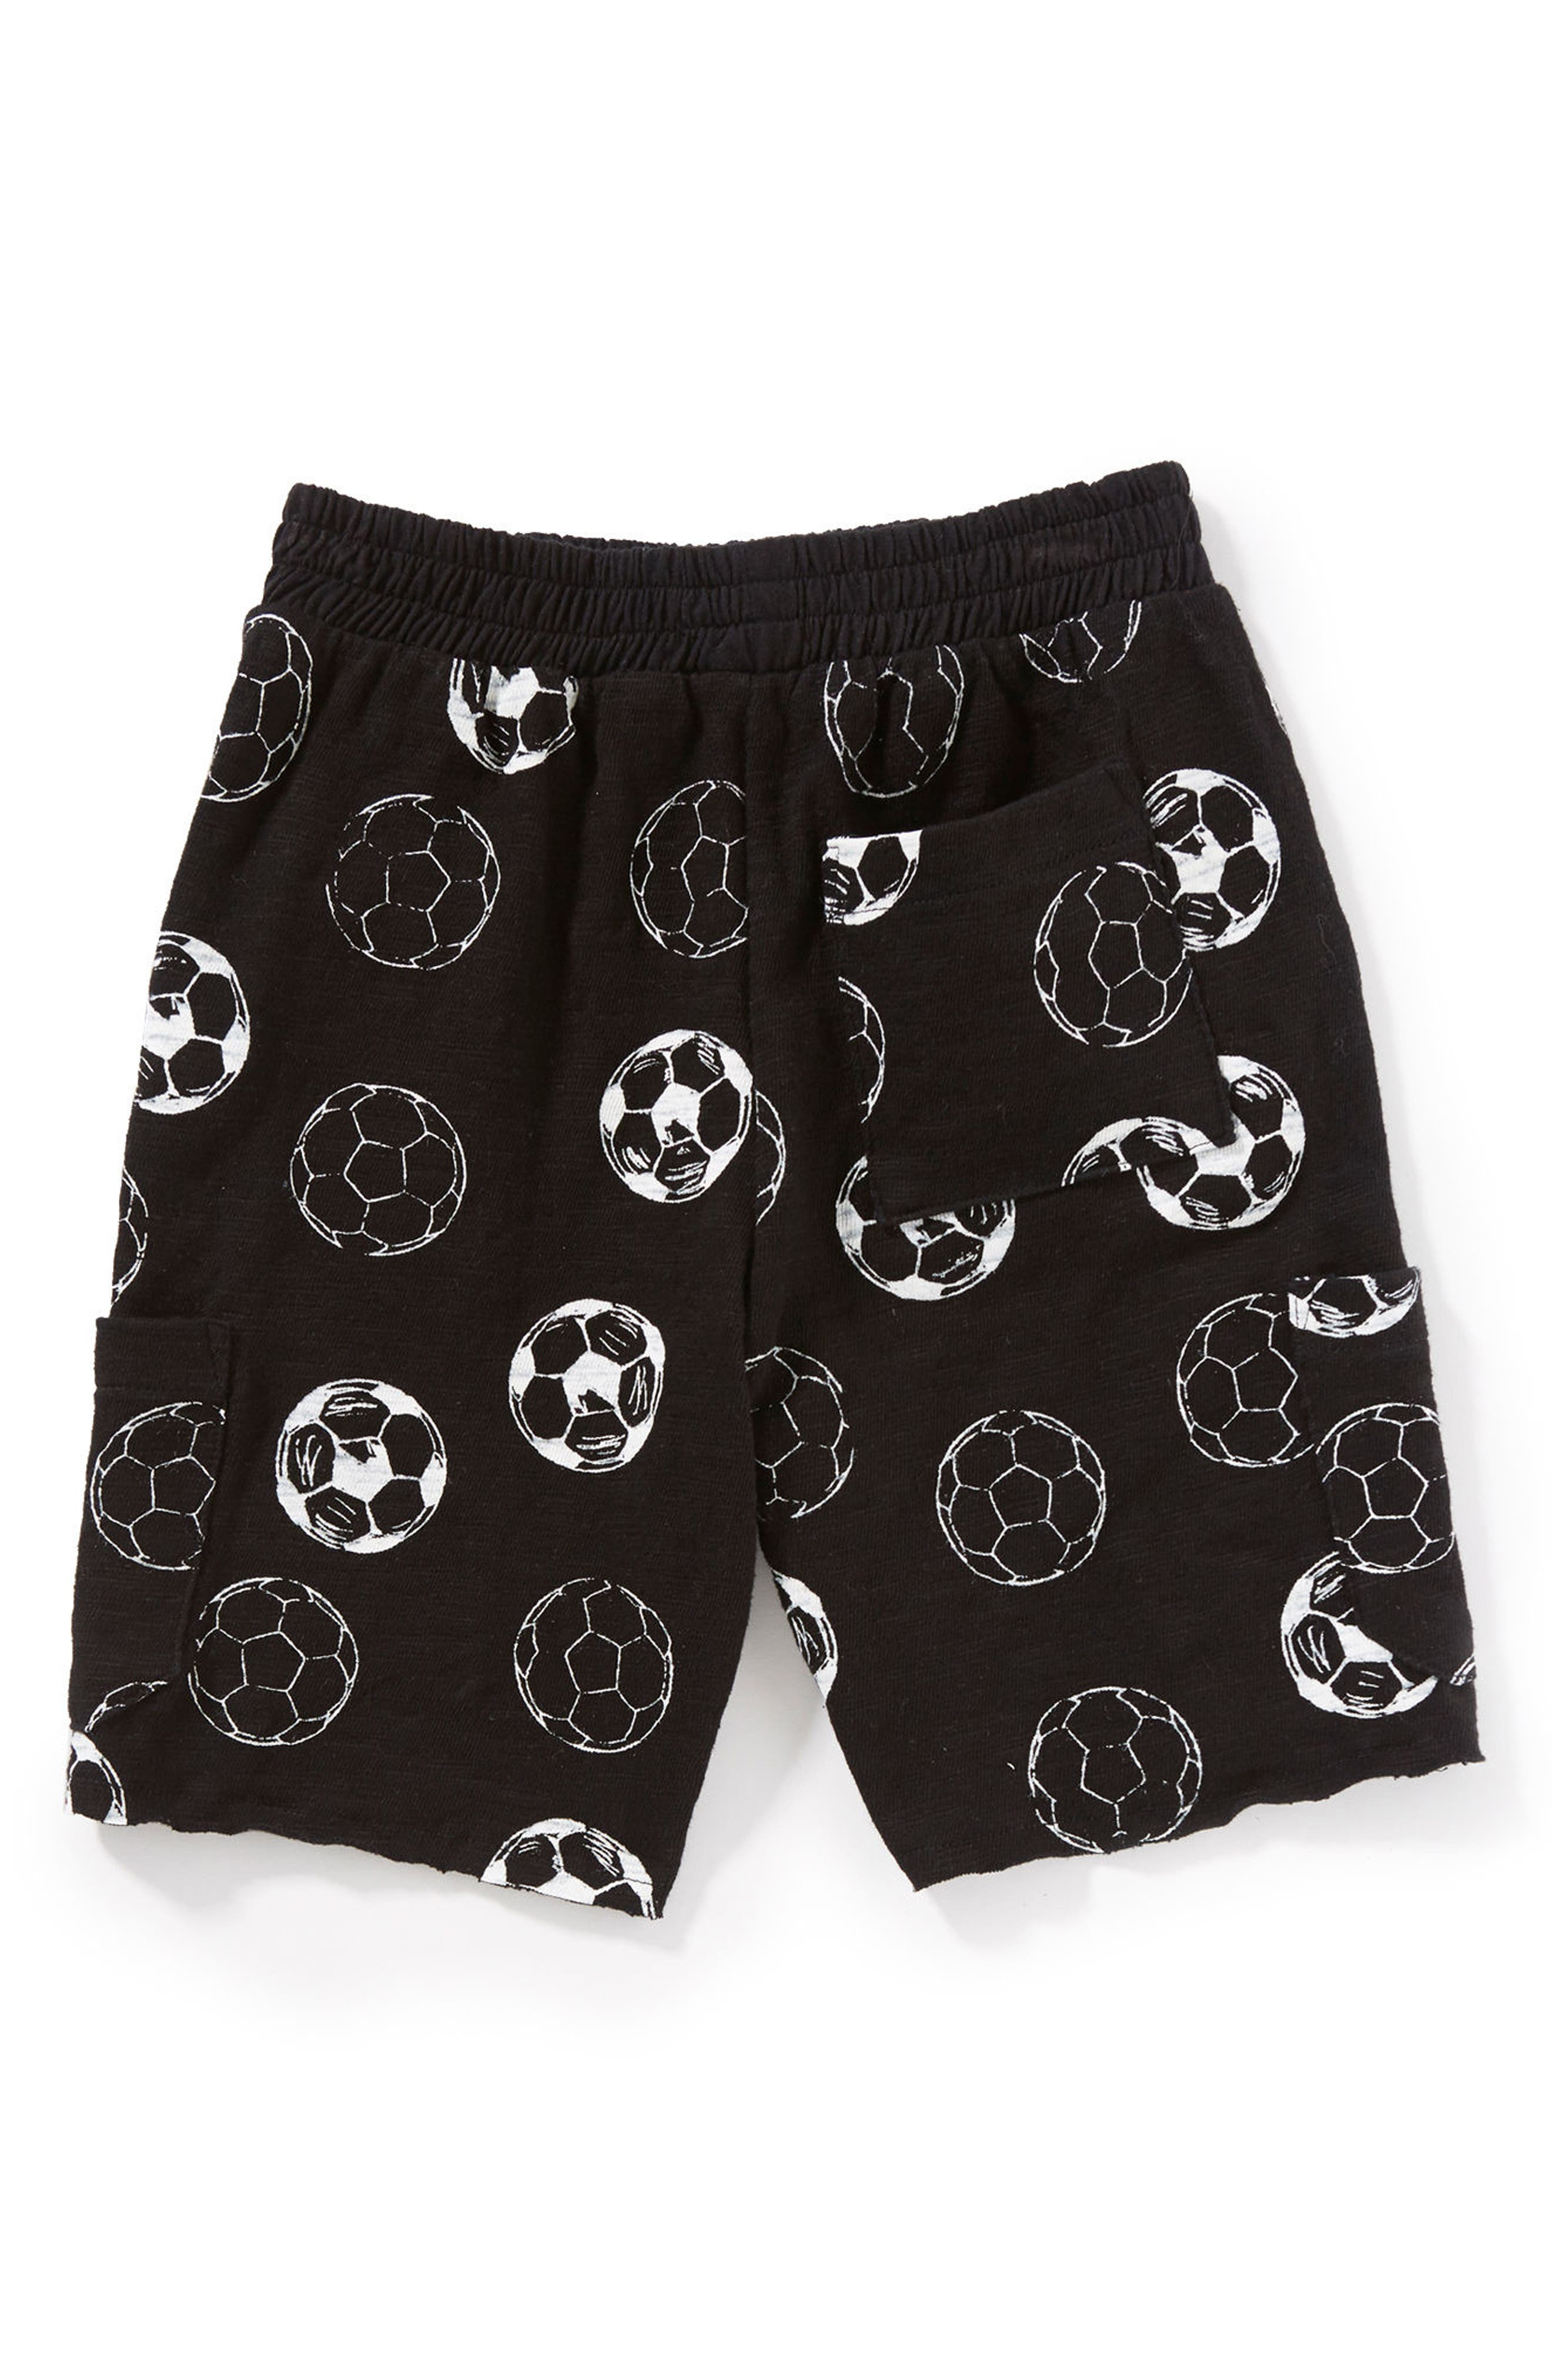 Soccer Ball Shorts,                             Alternate thumbnail 2, color,                             001